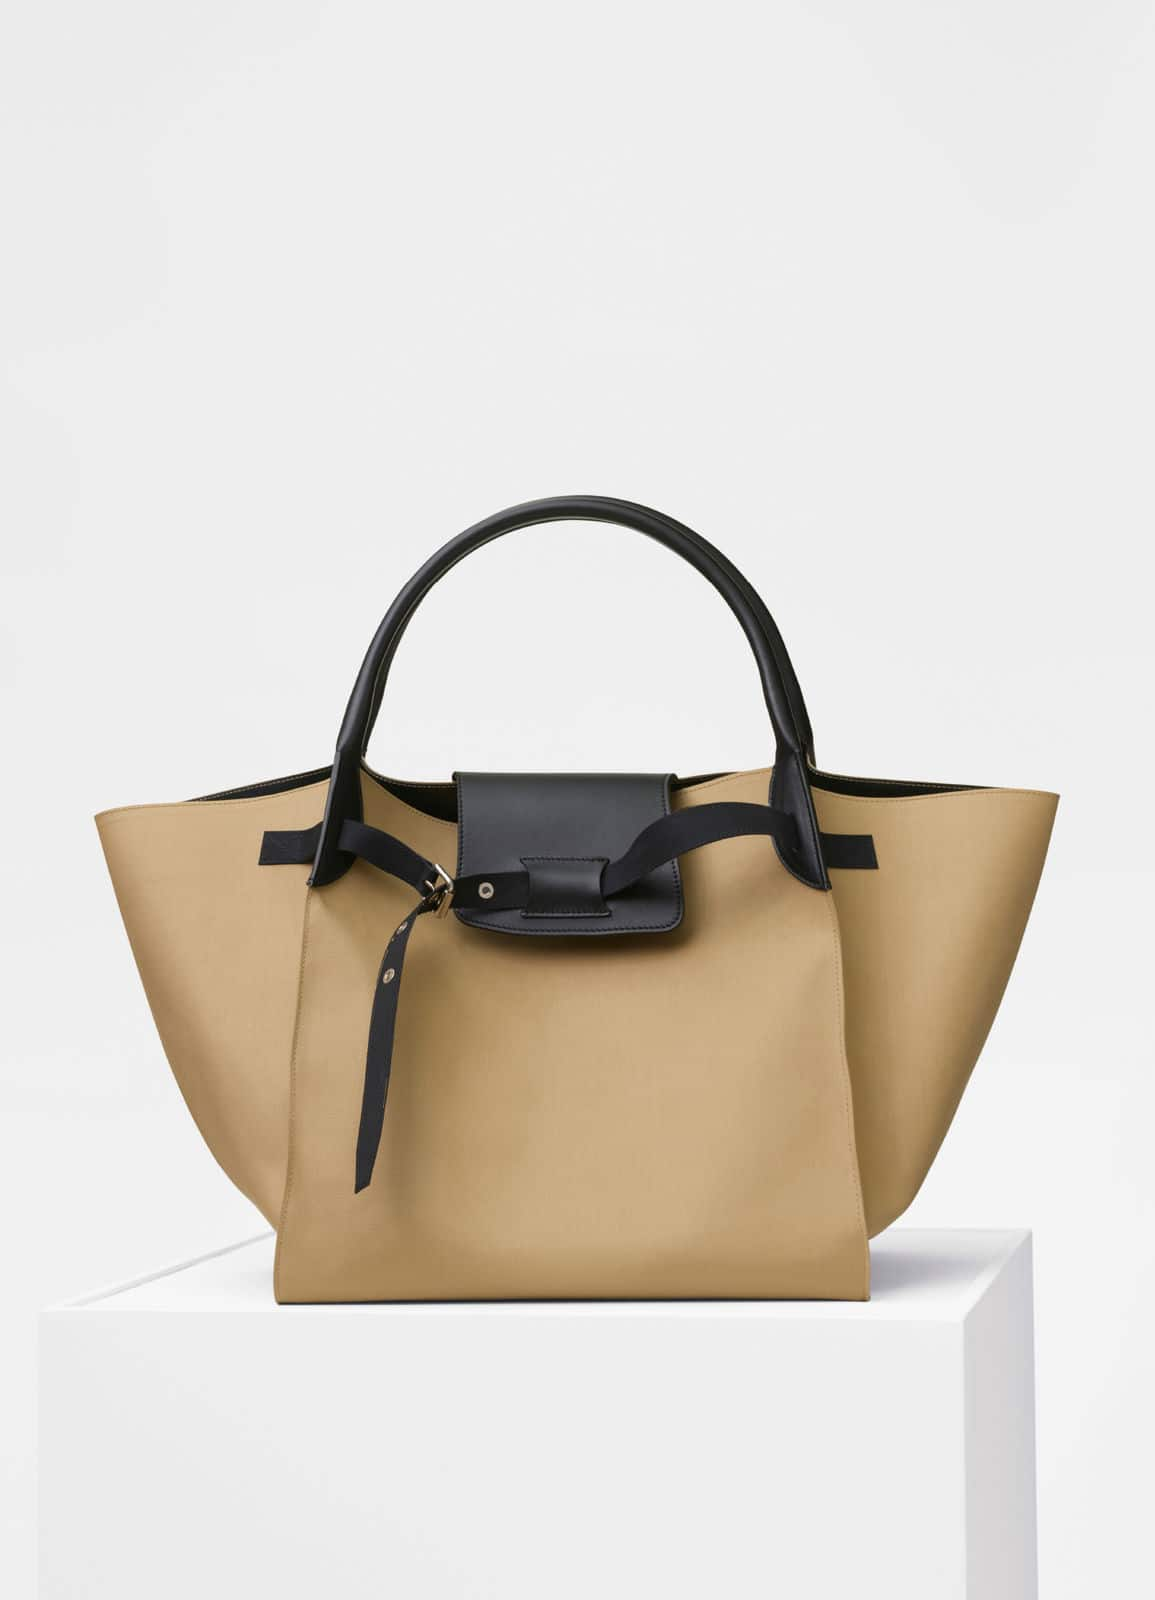 328c53f7f6 Celine Spring 2018 Bag Collection Featuring the Big Bucket